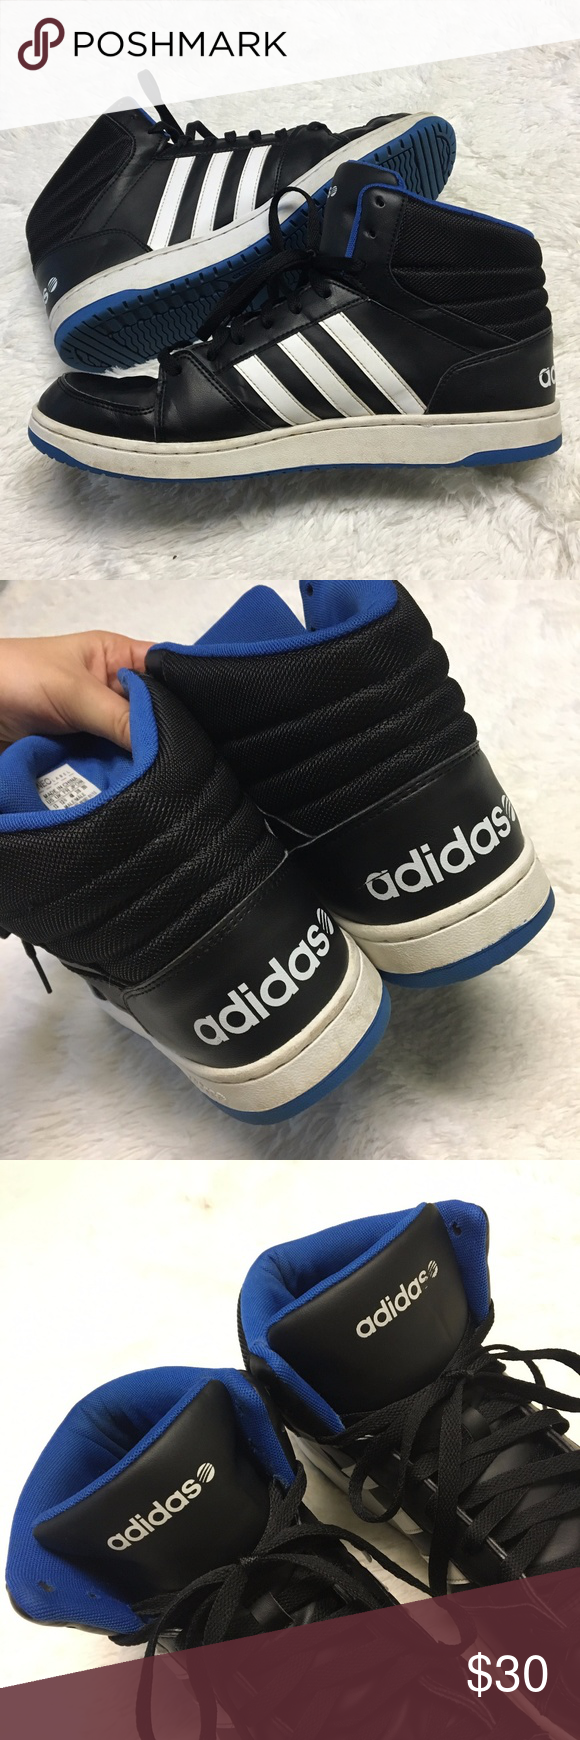 new style adidas neo high blue white 4233f 2586b